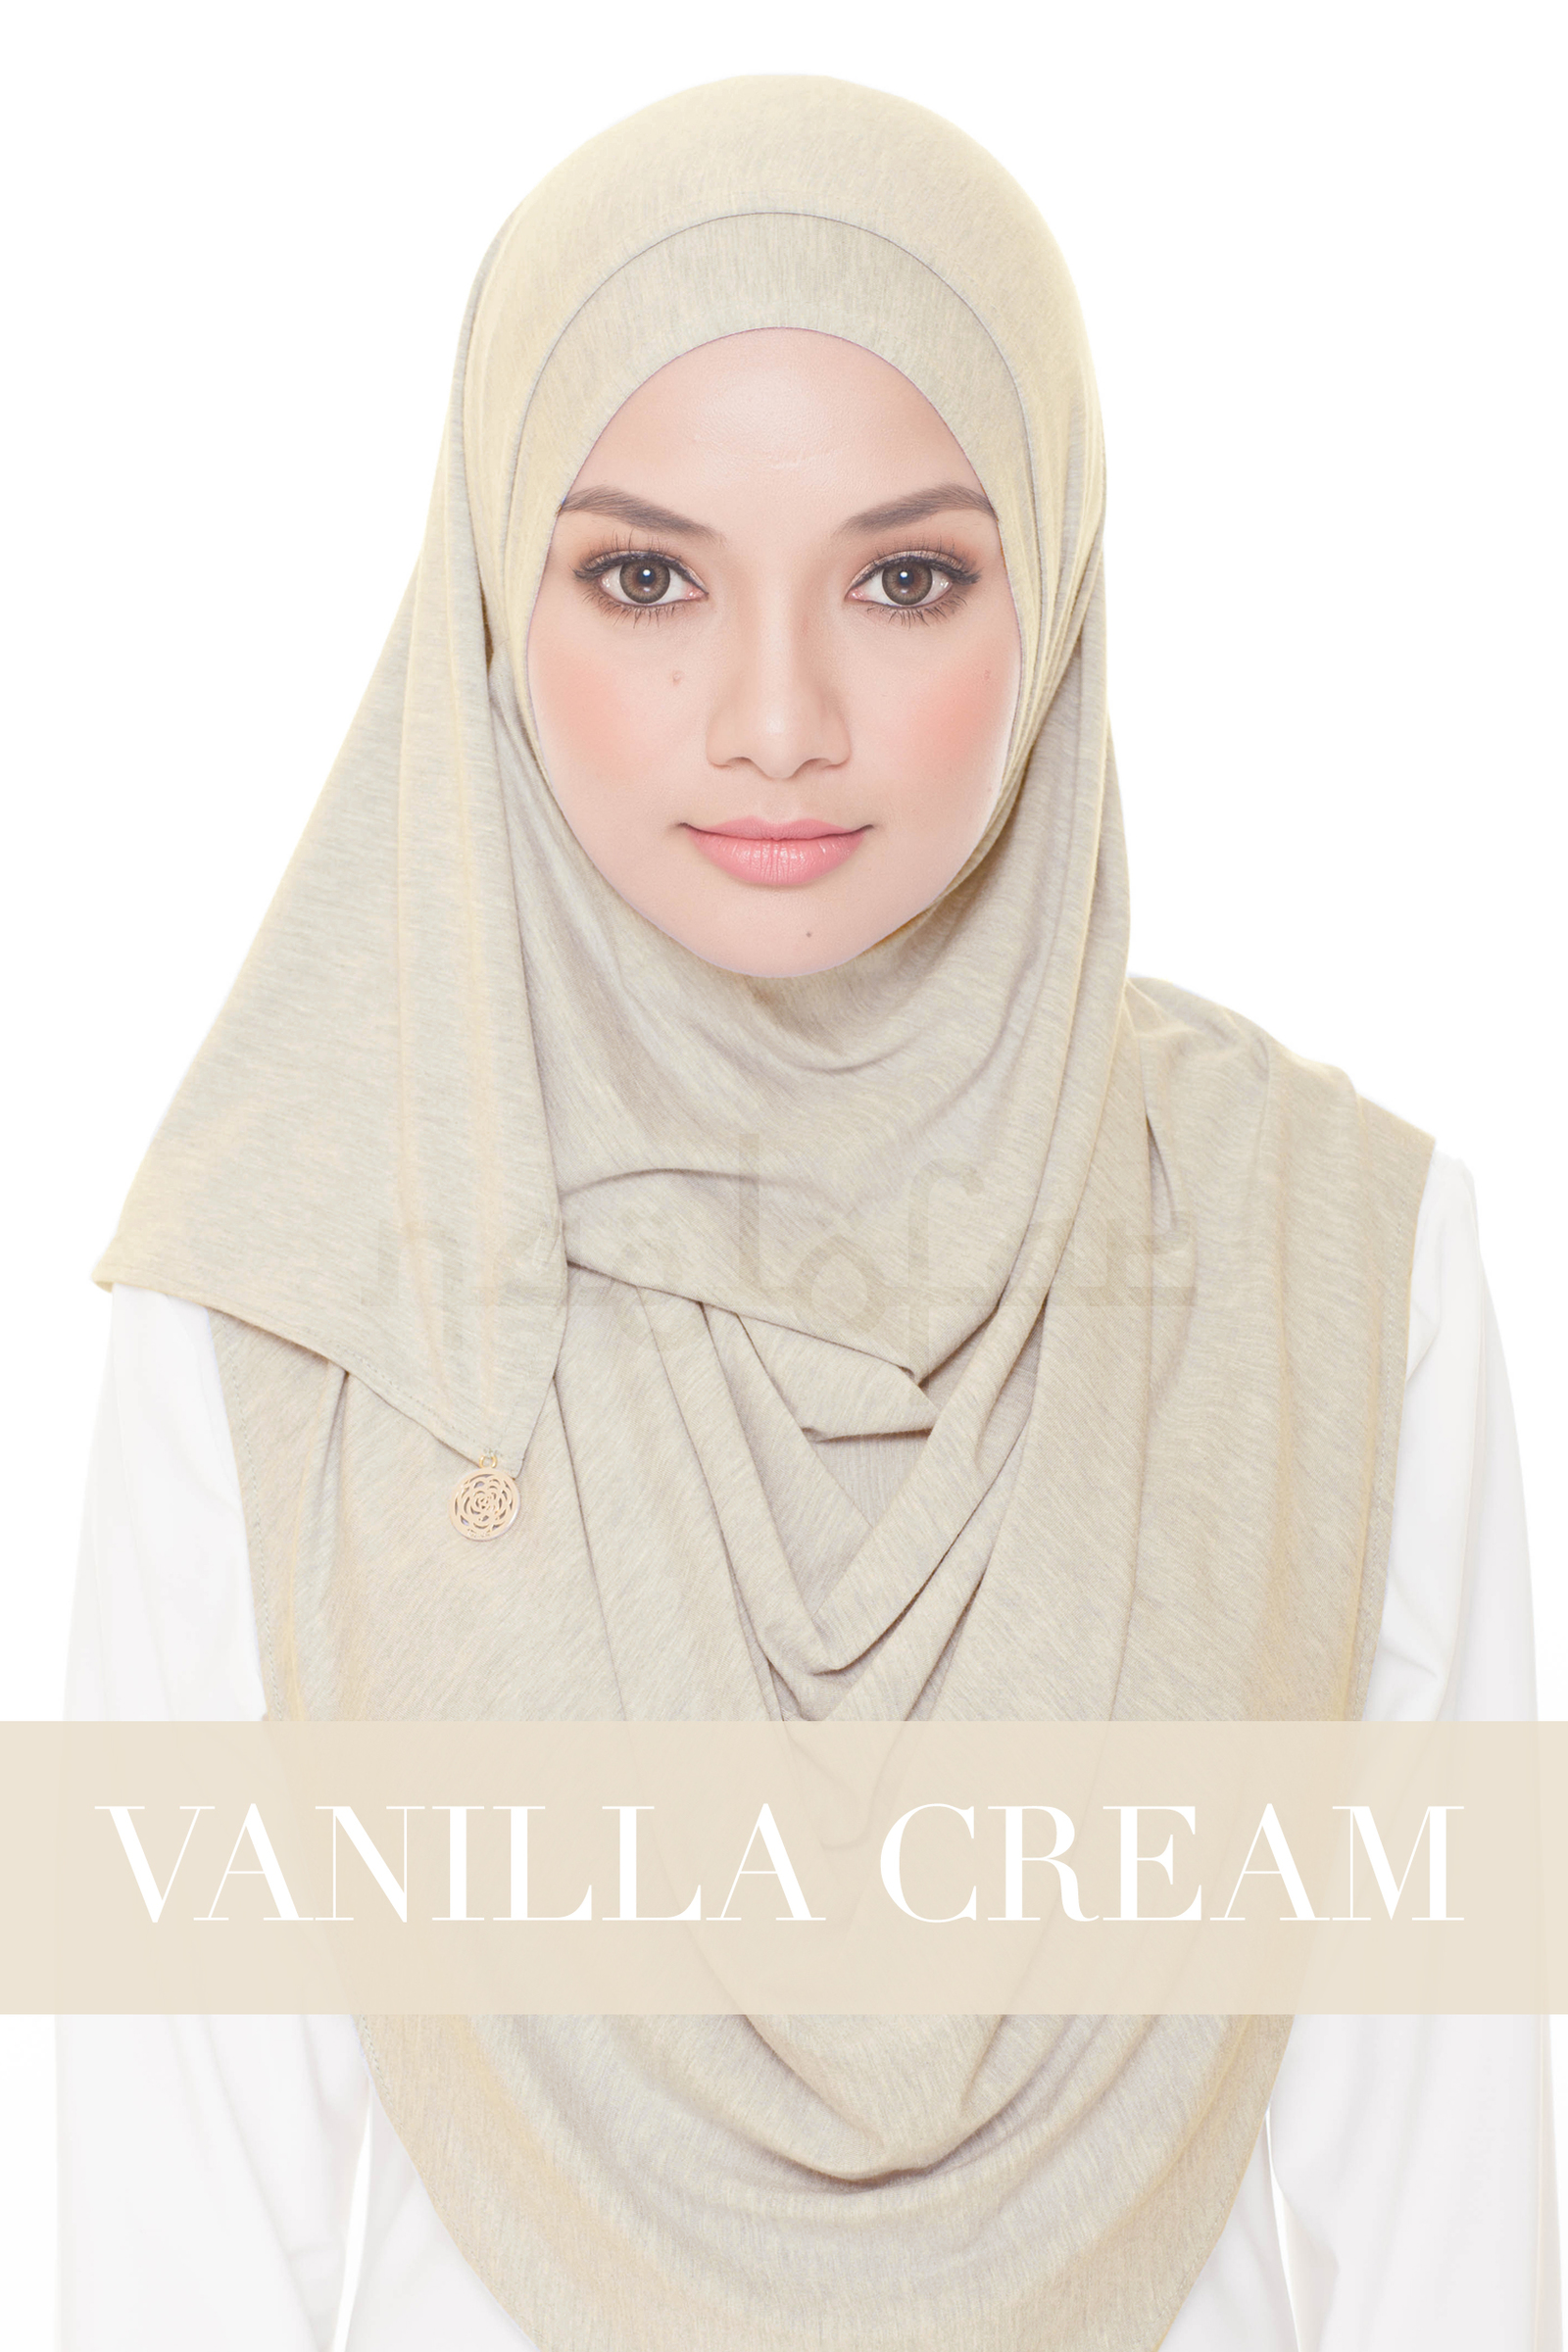 Babes & Basic Loop - Vanilla Cream.jpg